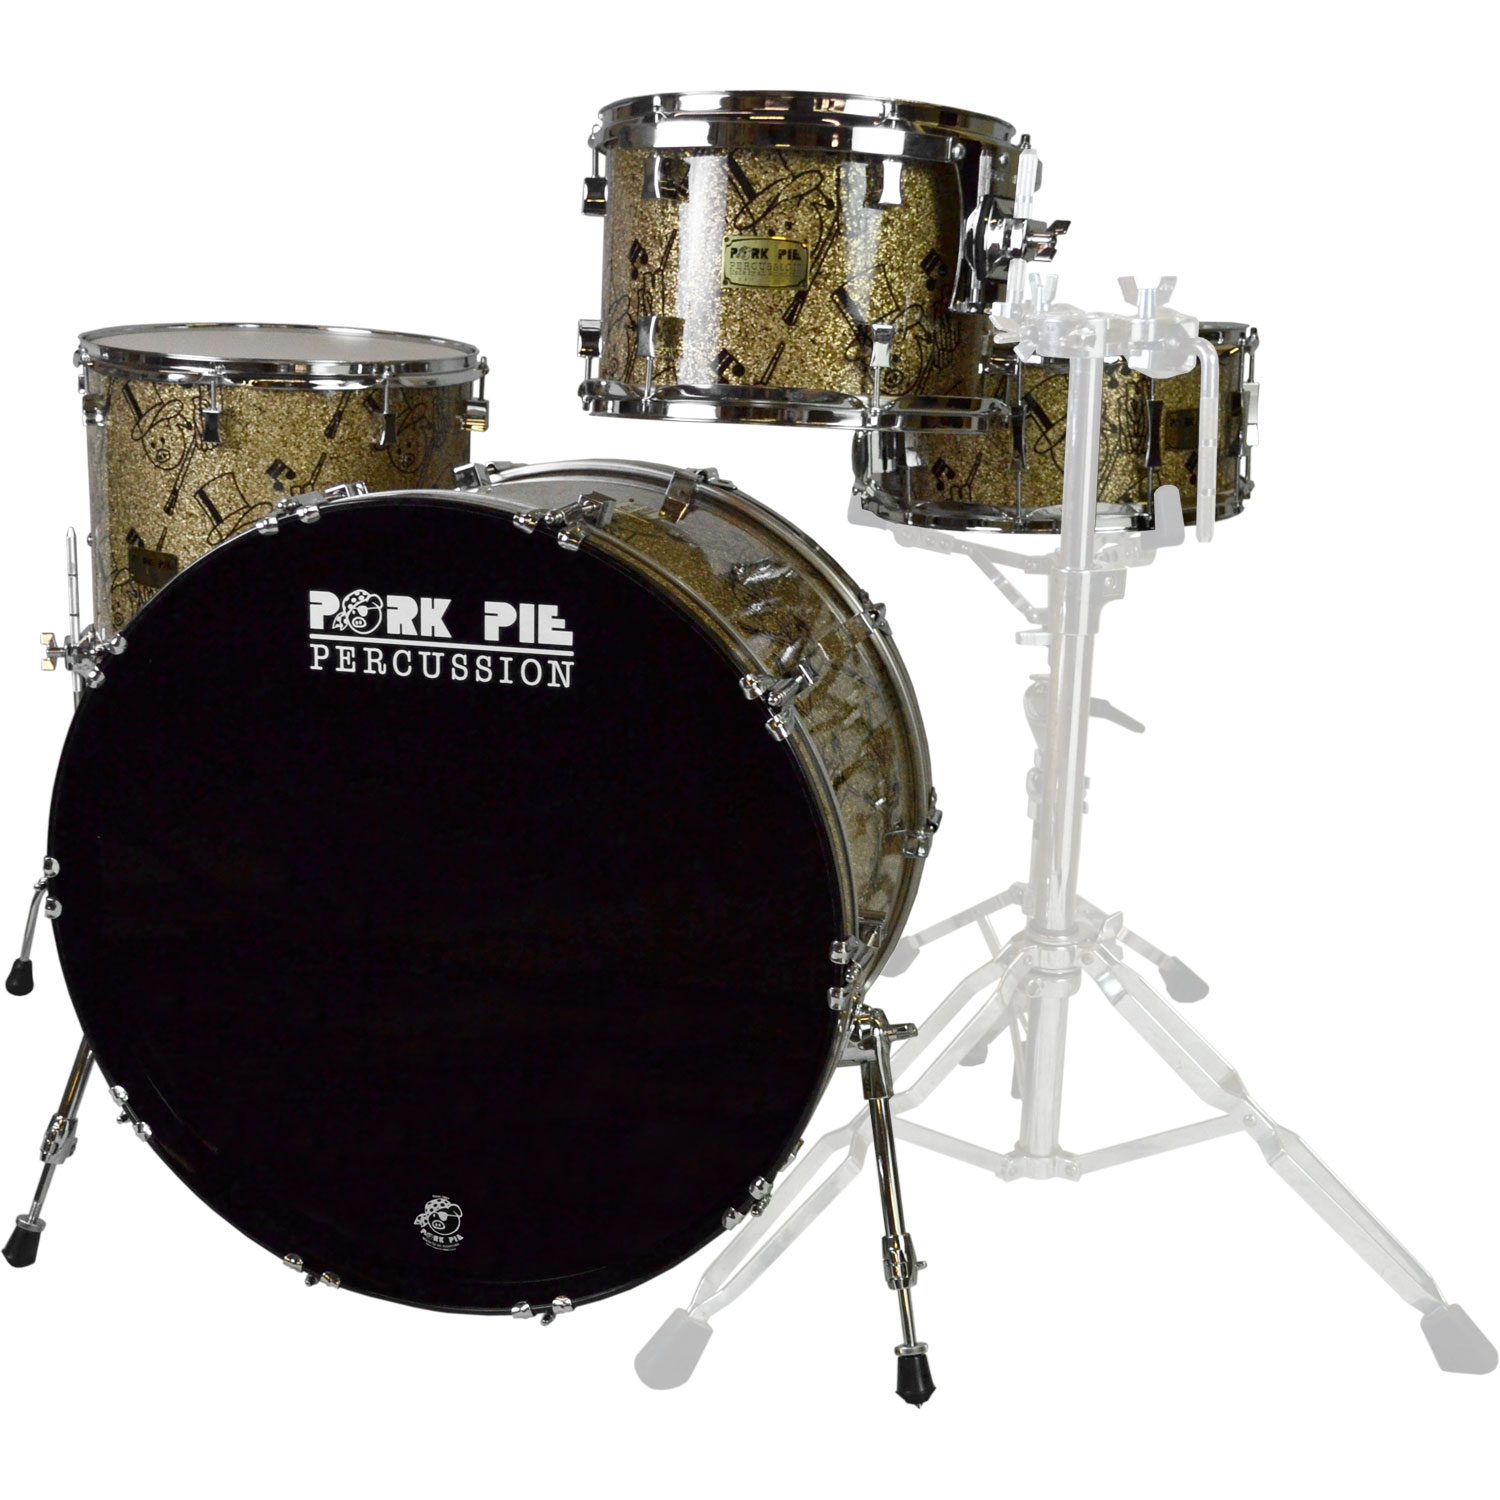 "Pork Pie Percussion USA Custom Maple 4-Piece Drum Set Shell Pack (24"" Bass, 13/16"" Toms, 14"" Snare) in Top Hat and Pig Graphic"